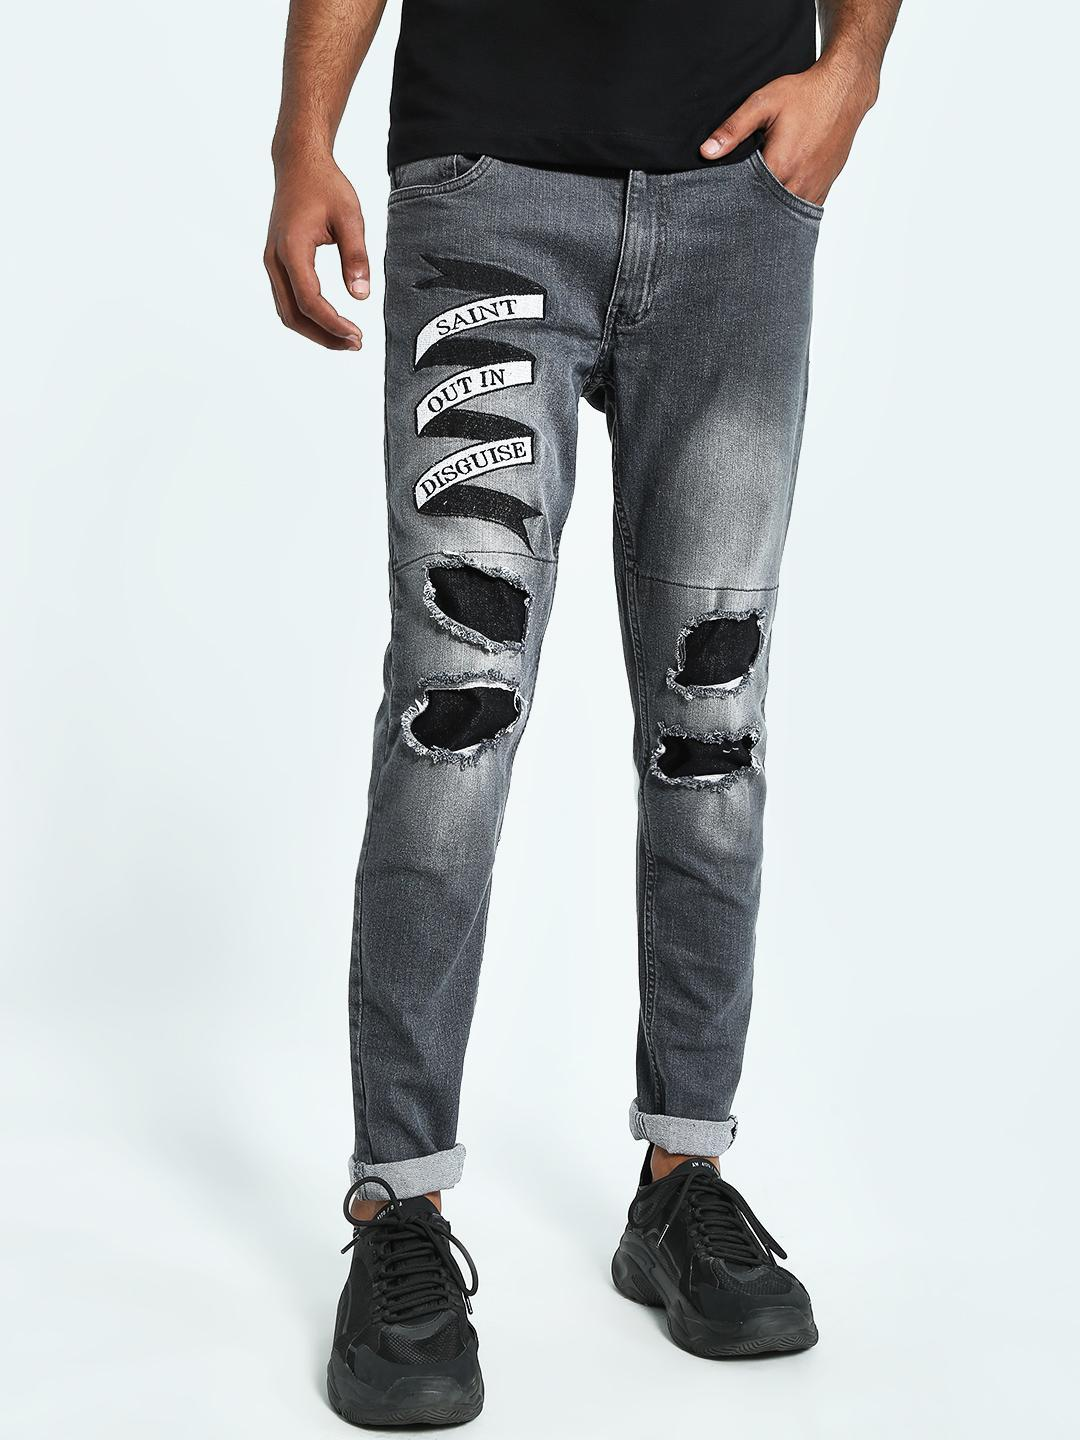 Kultprit Grey Embroidered Slogan Ripped Slim Jeans 1